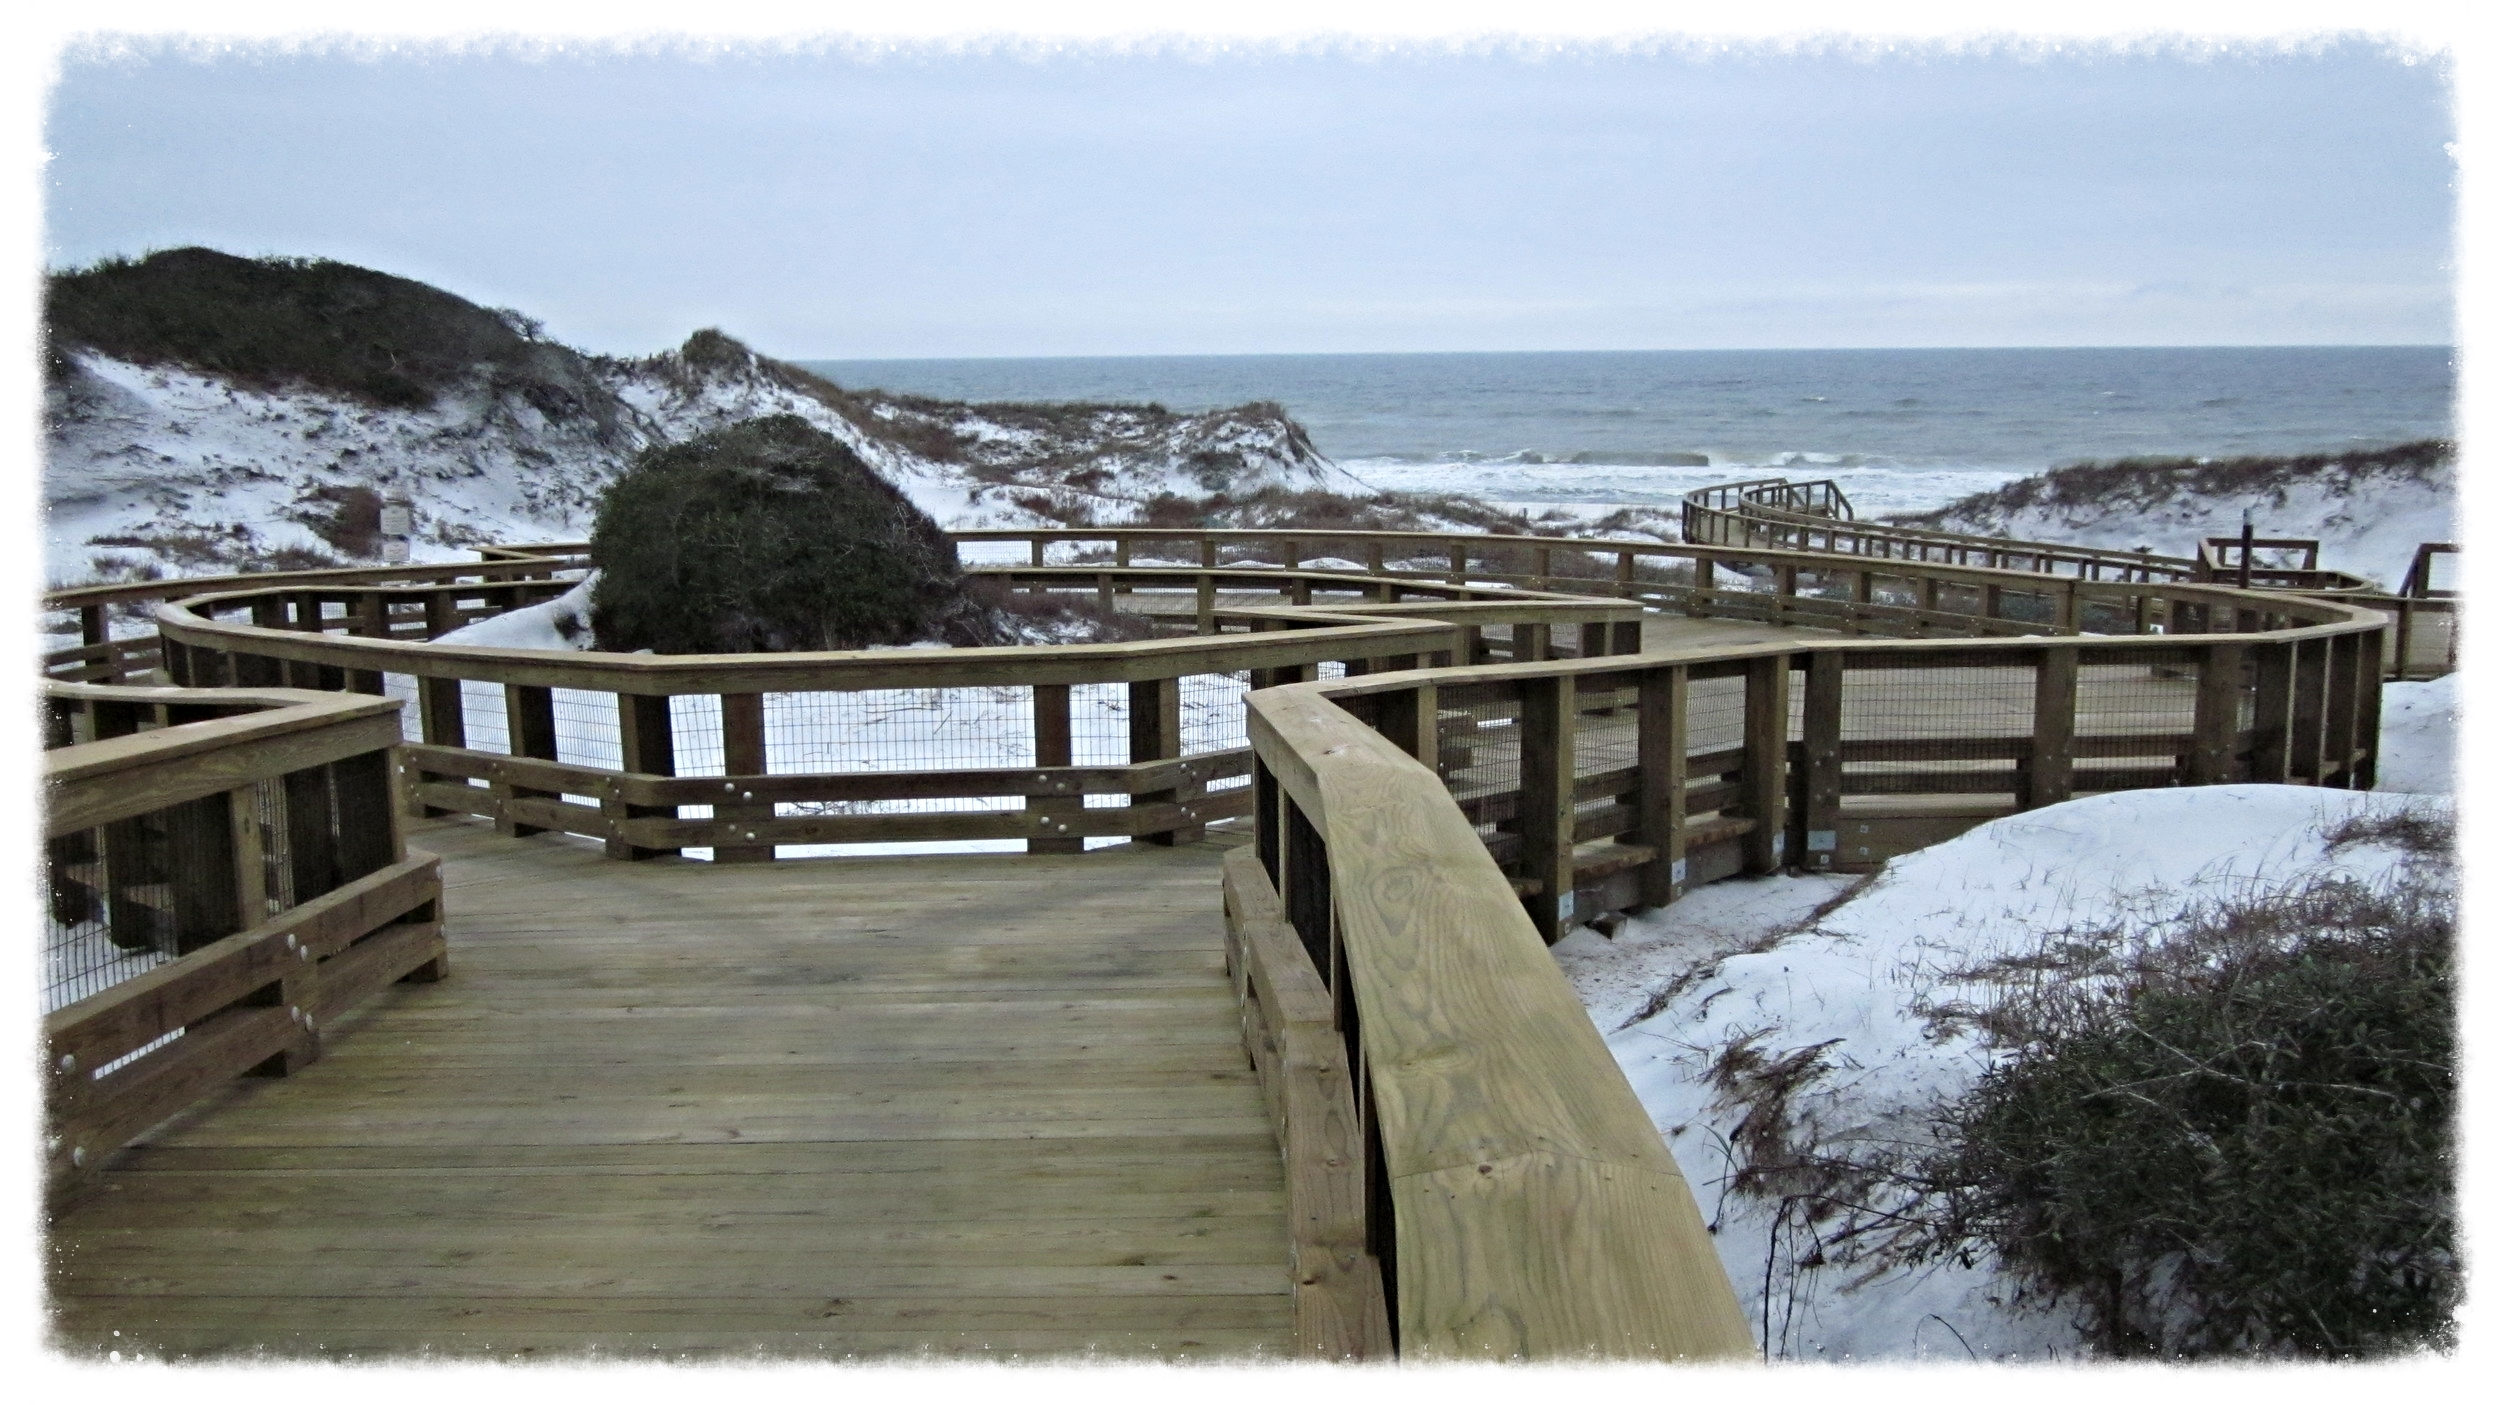 Boardwalk at the beach